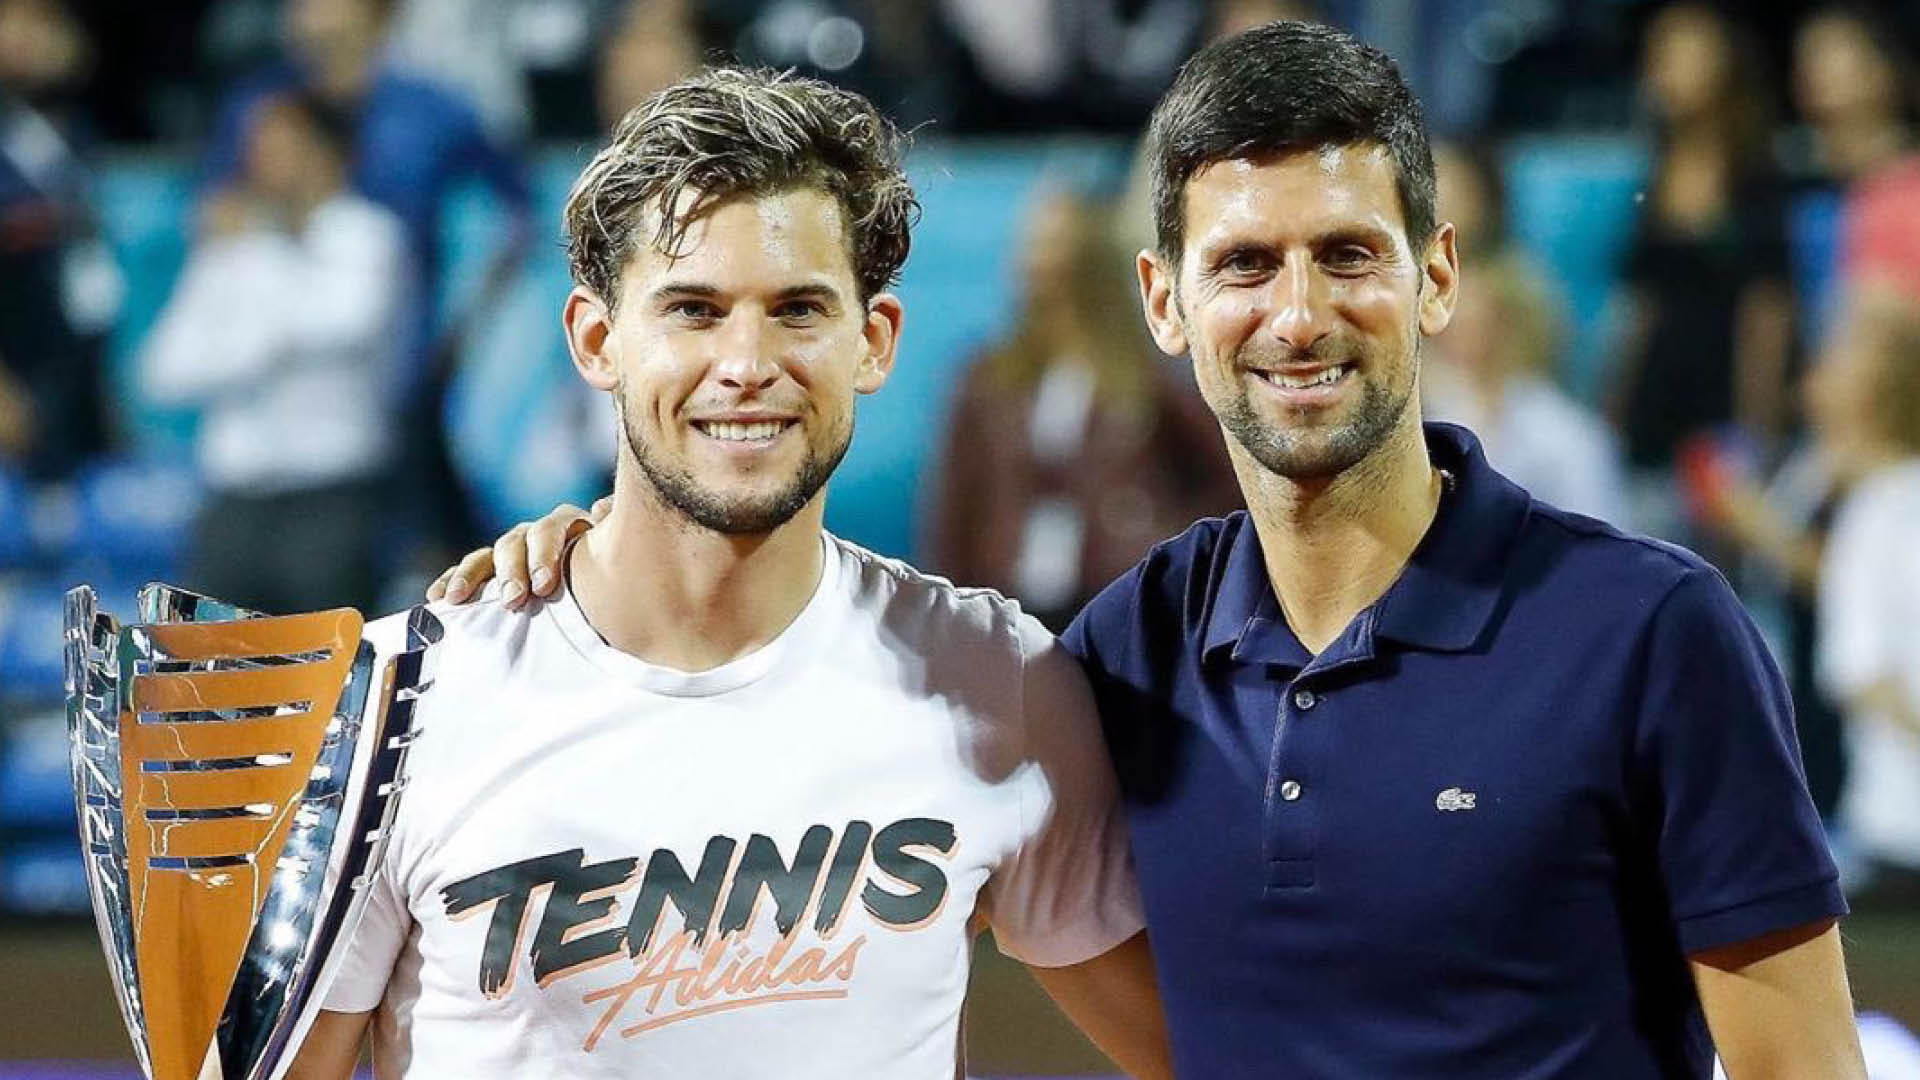 Dominic Thiem (left) and Novak Djokovic pictures at the Adria Tour first leg in Belgrade, which Thiem won. (Picture courtesy: Novak Djokovic/Twitter)